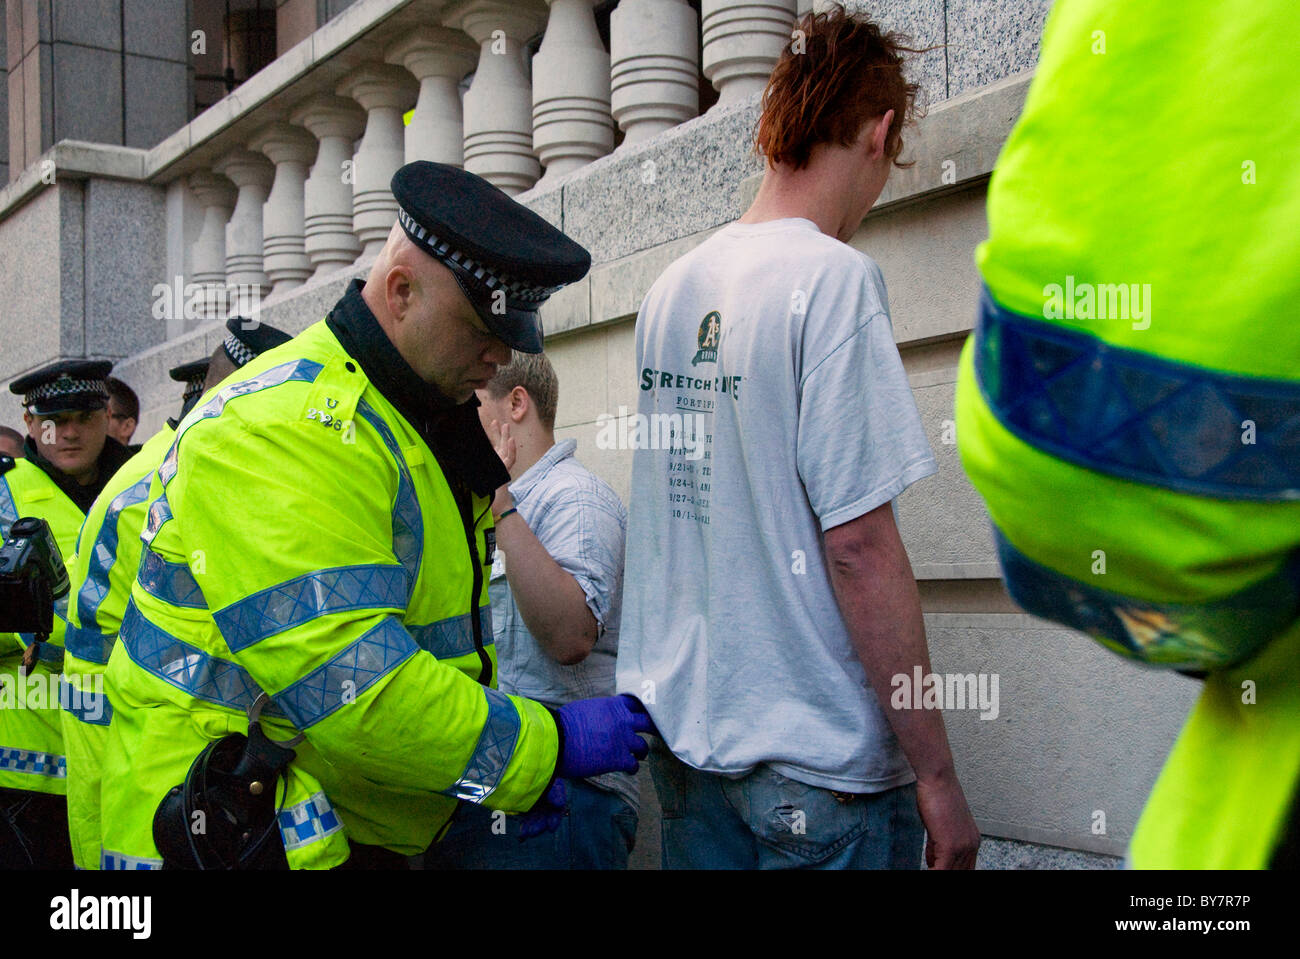 Police stop and searching youths after G20 demonstration - Stock Image